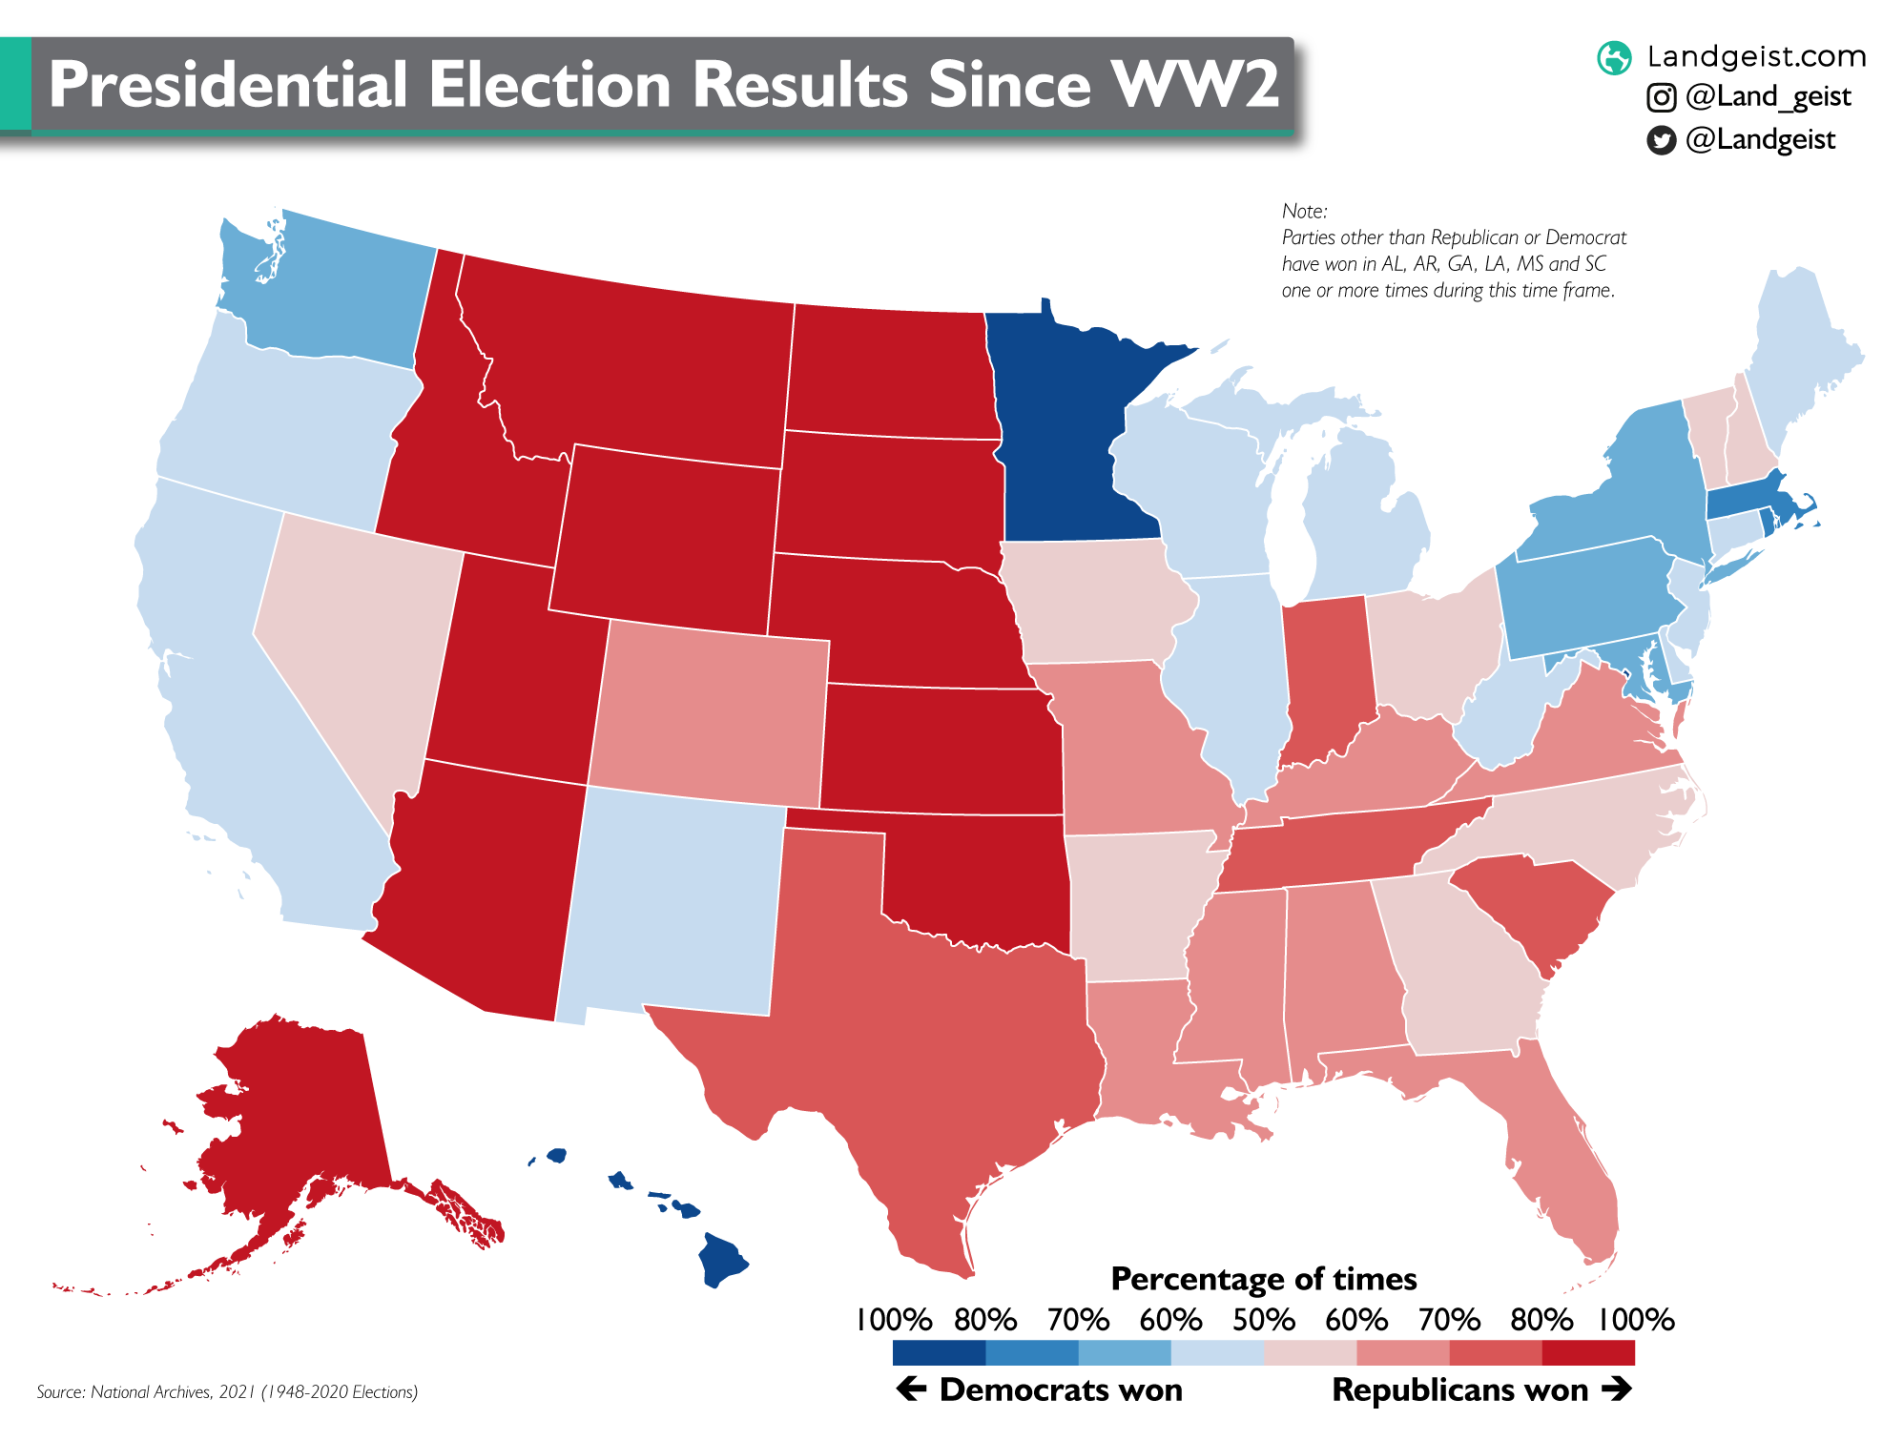 Map of the US presidential election results since World War 2